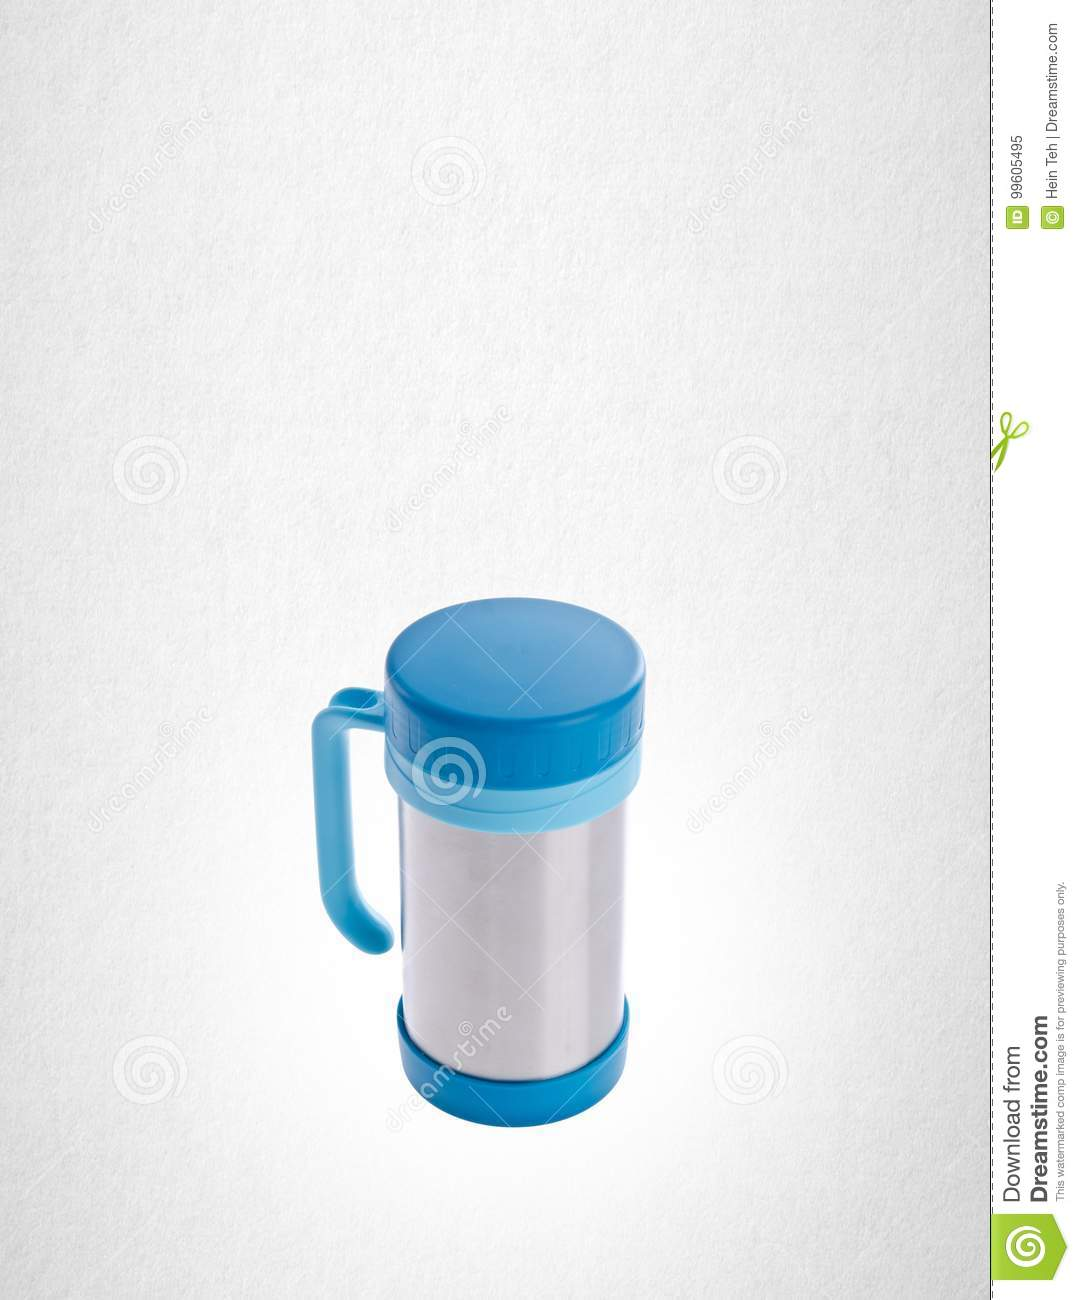 Thermo cup or stainless steel thermo cup on a background.